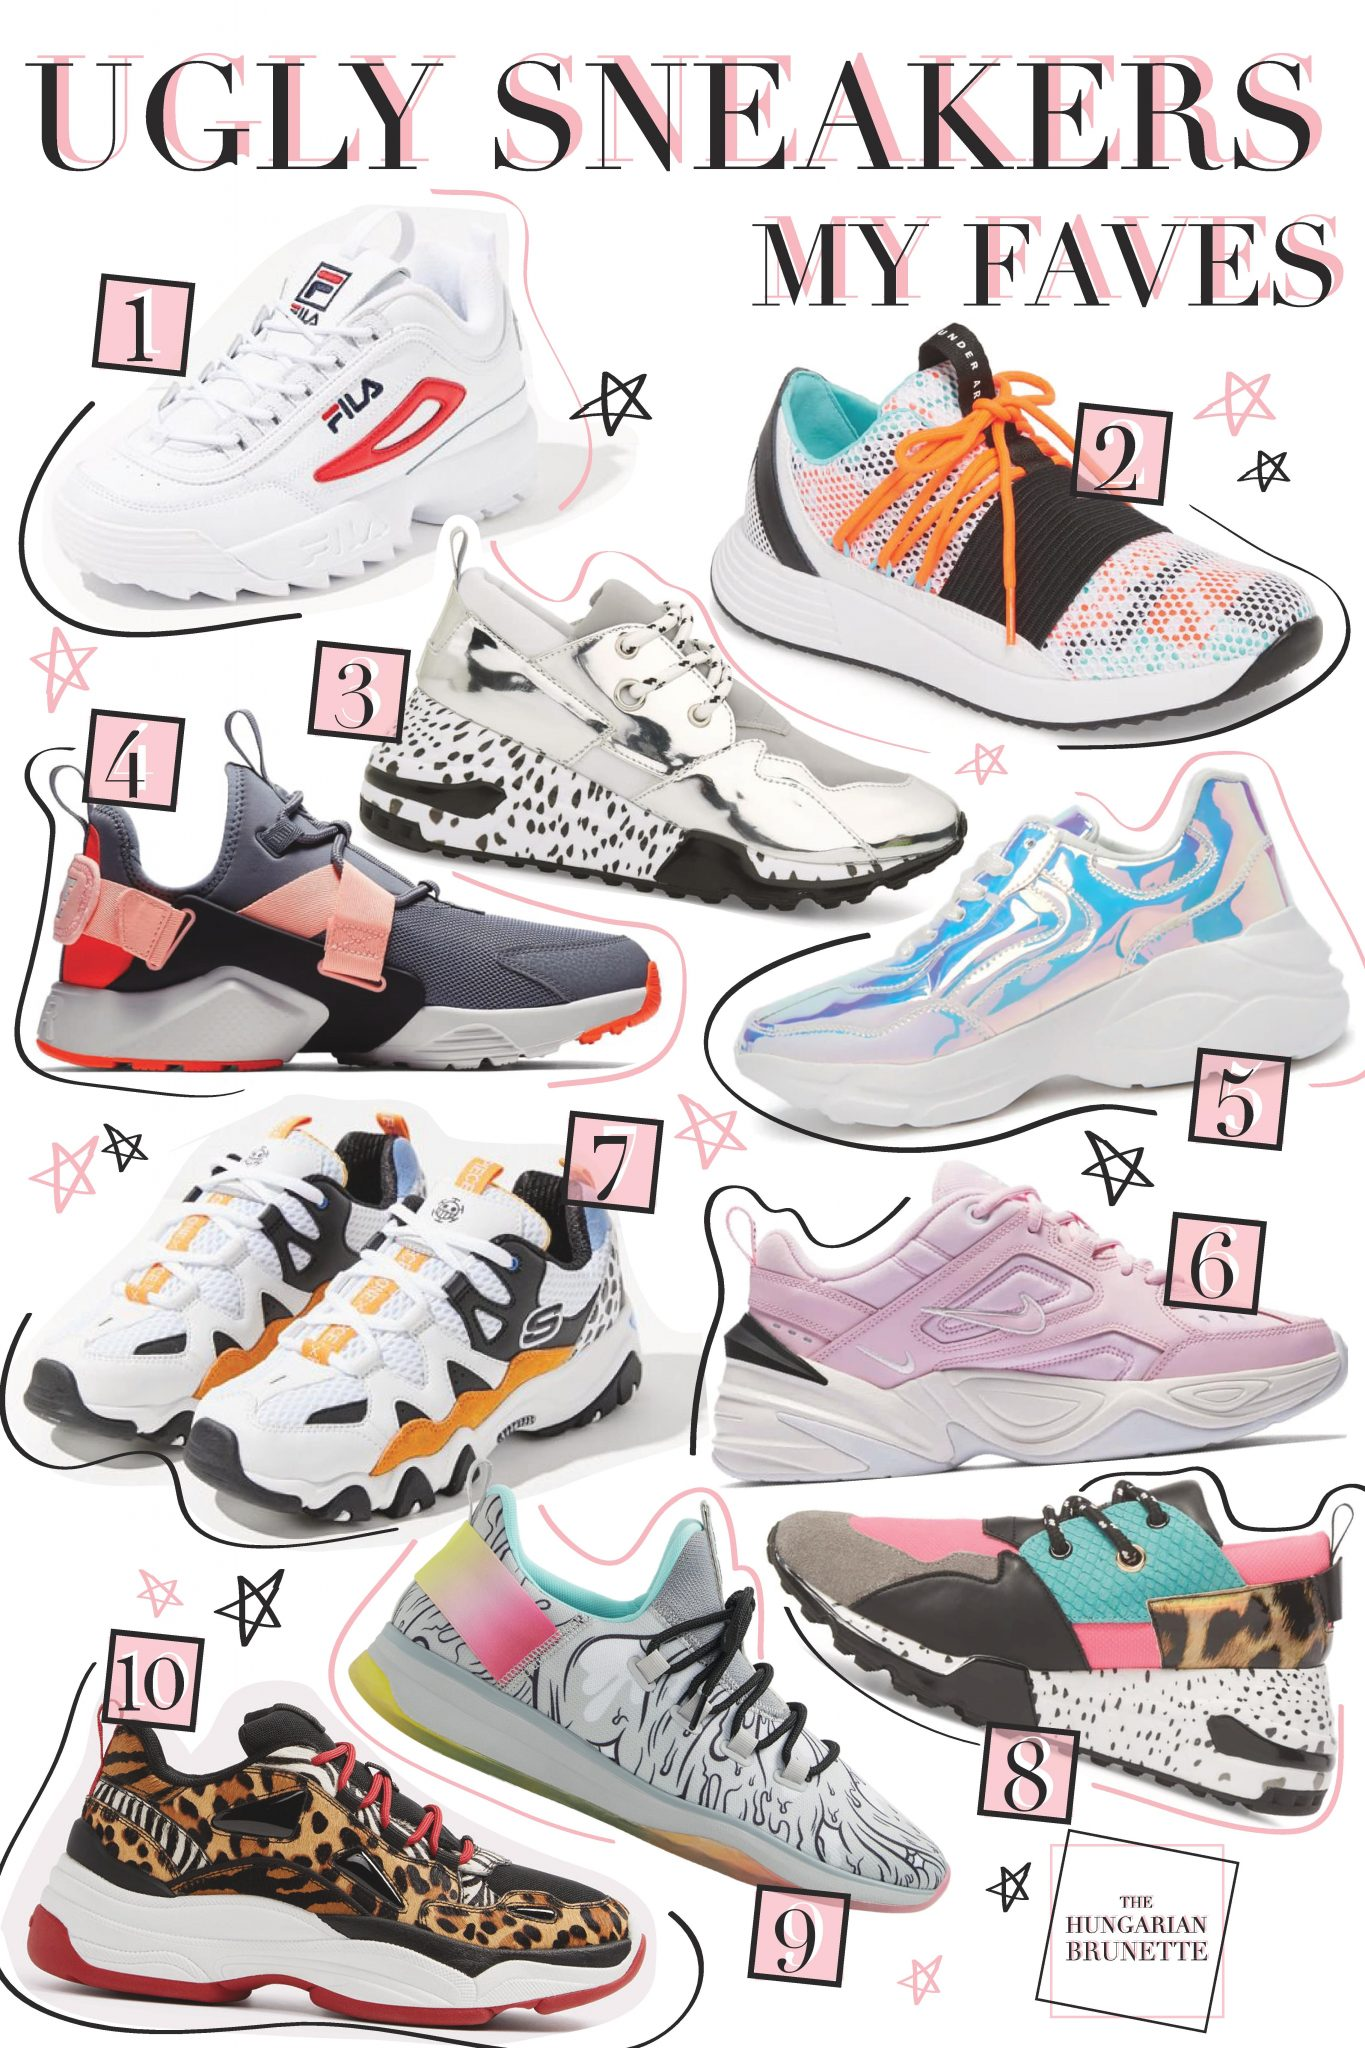 UGLY SNEAKERS: MY FAVES — The